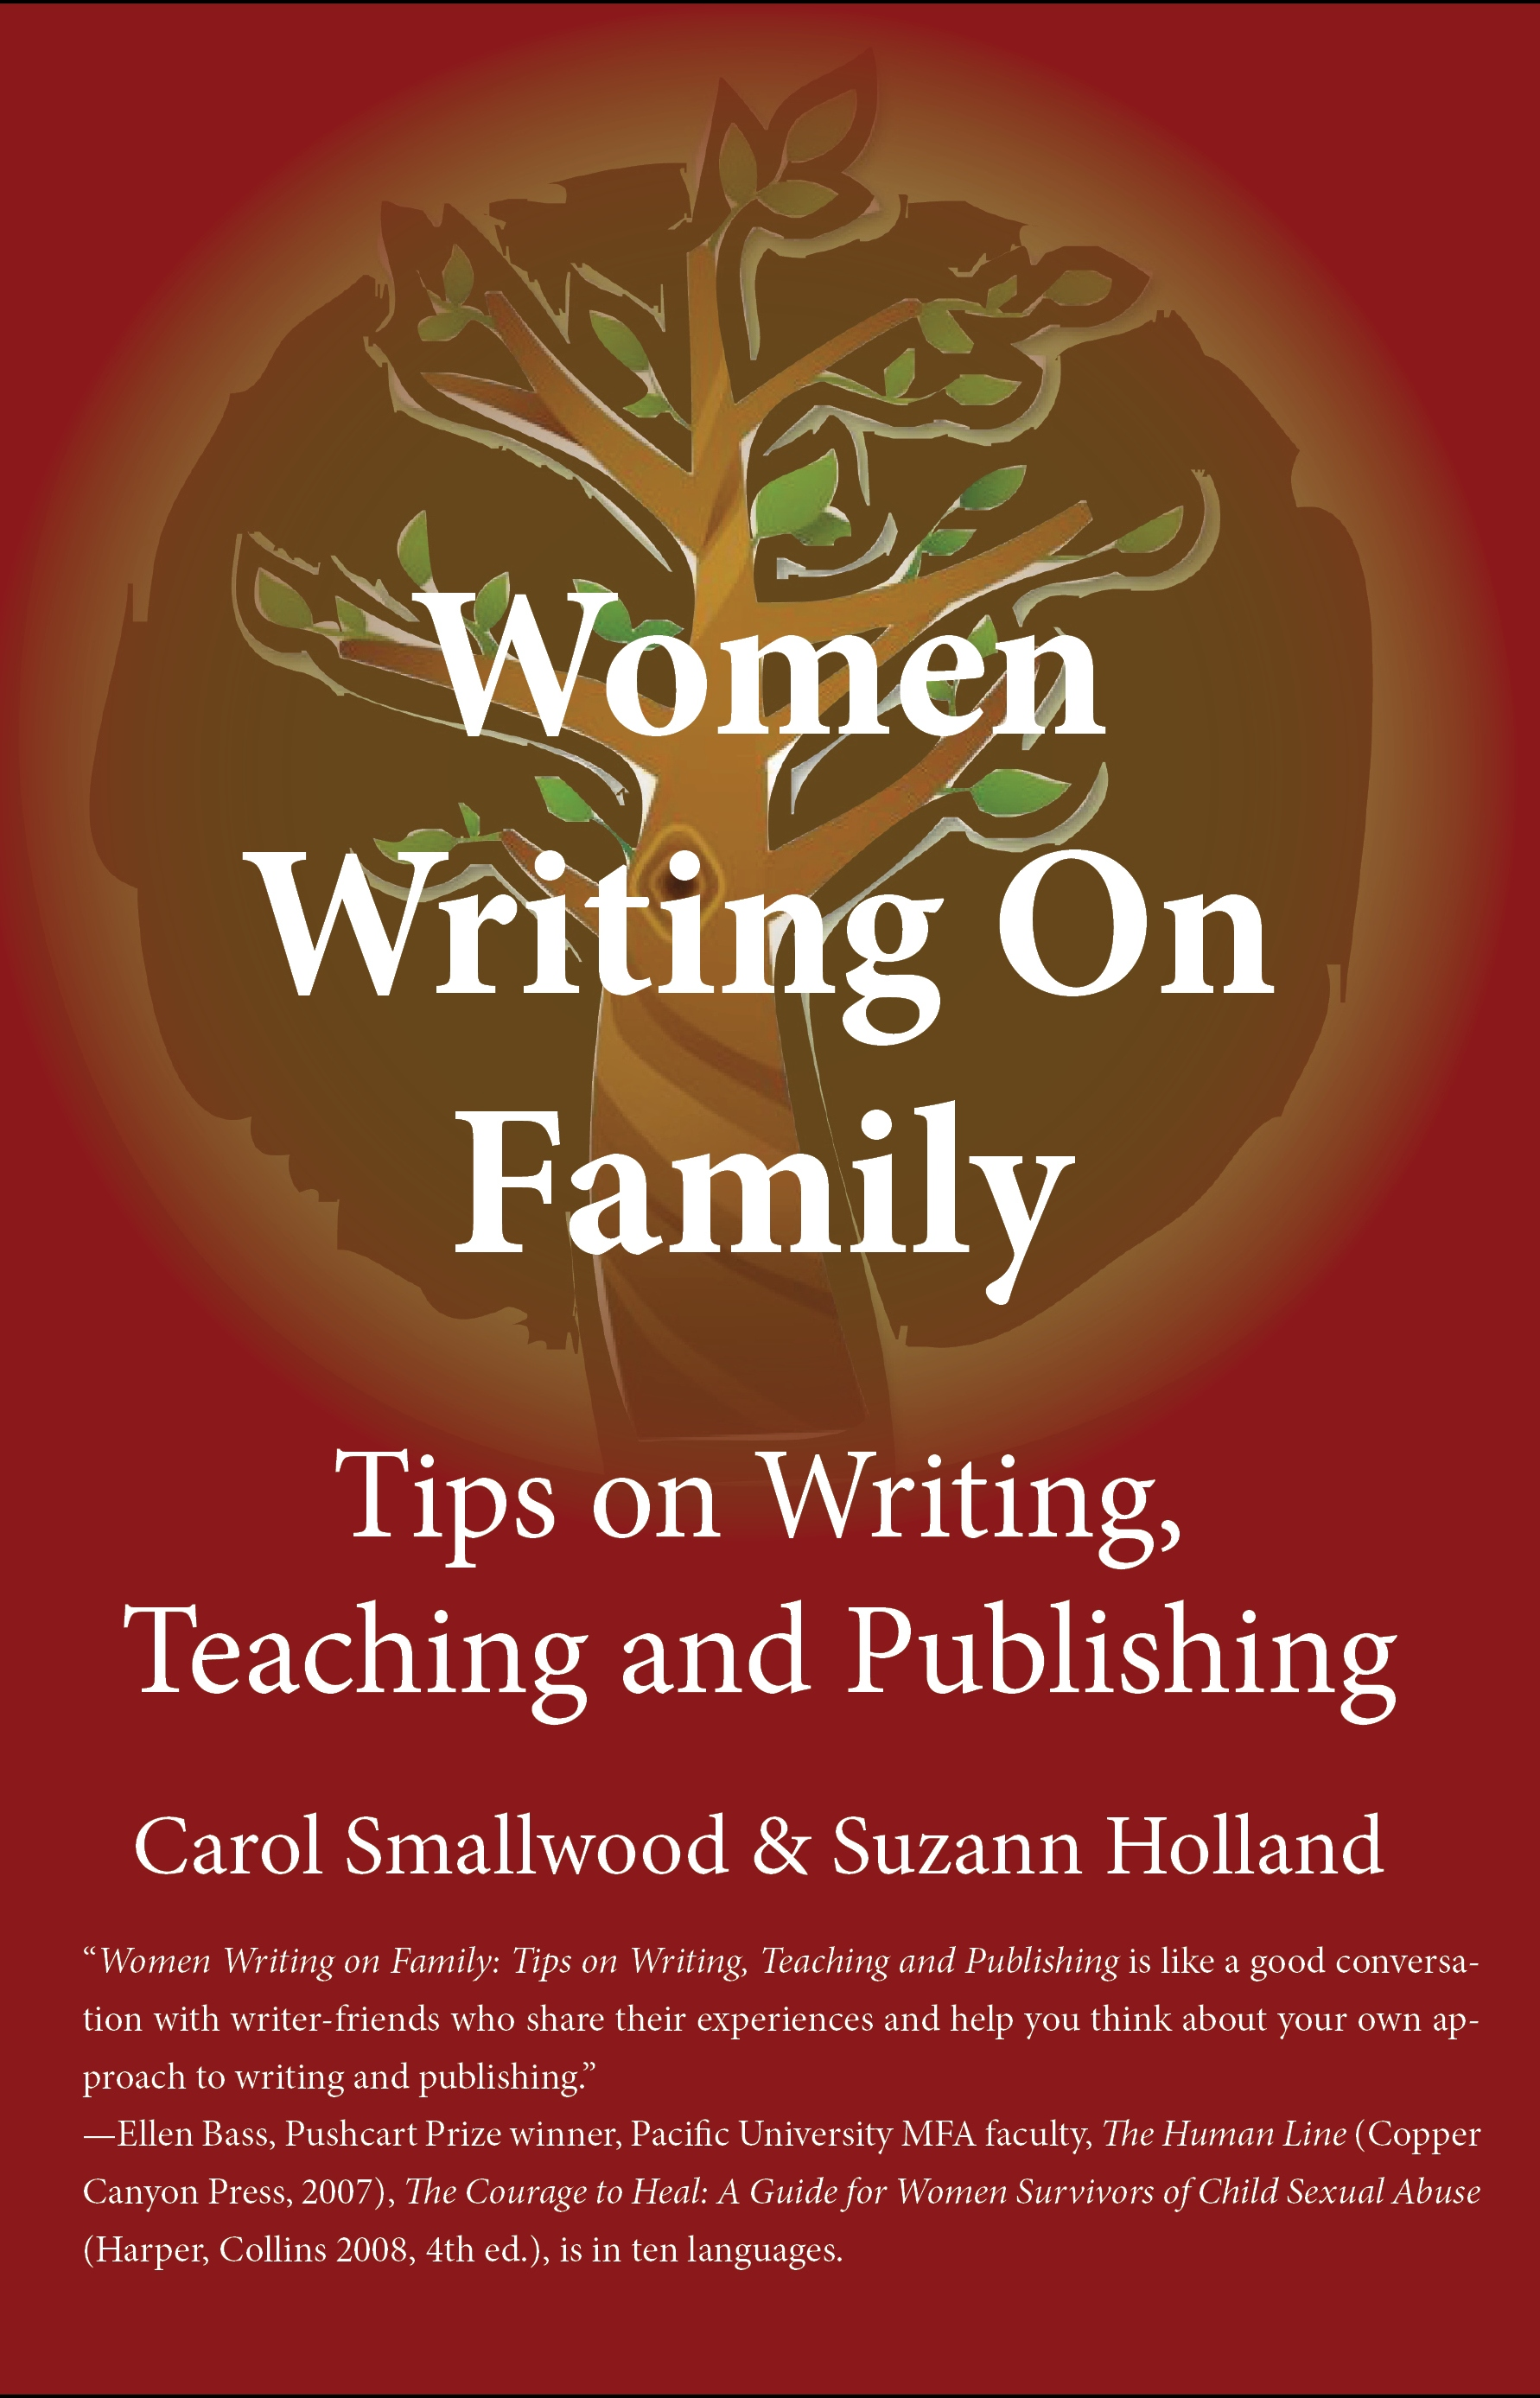 Women Writing on Family: Tips on Writing, Teaching and Publishing